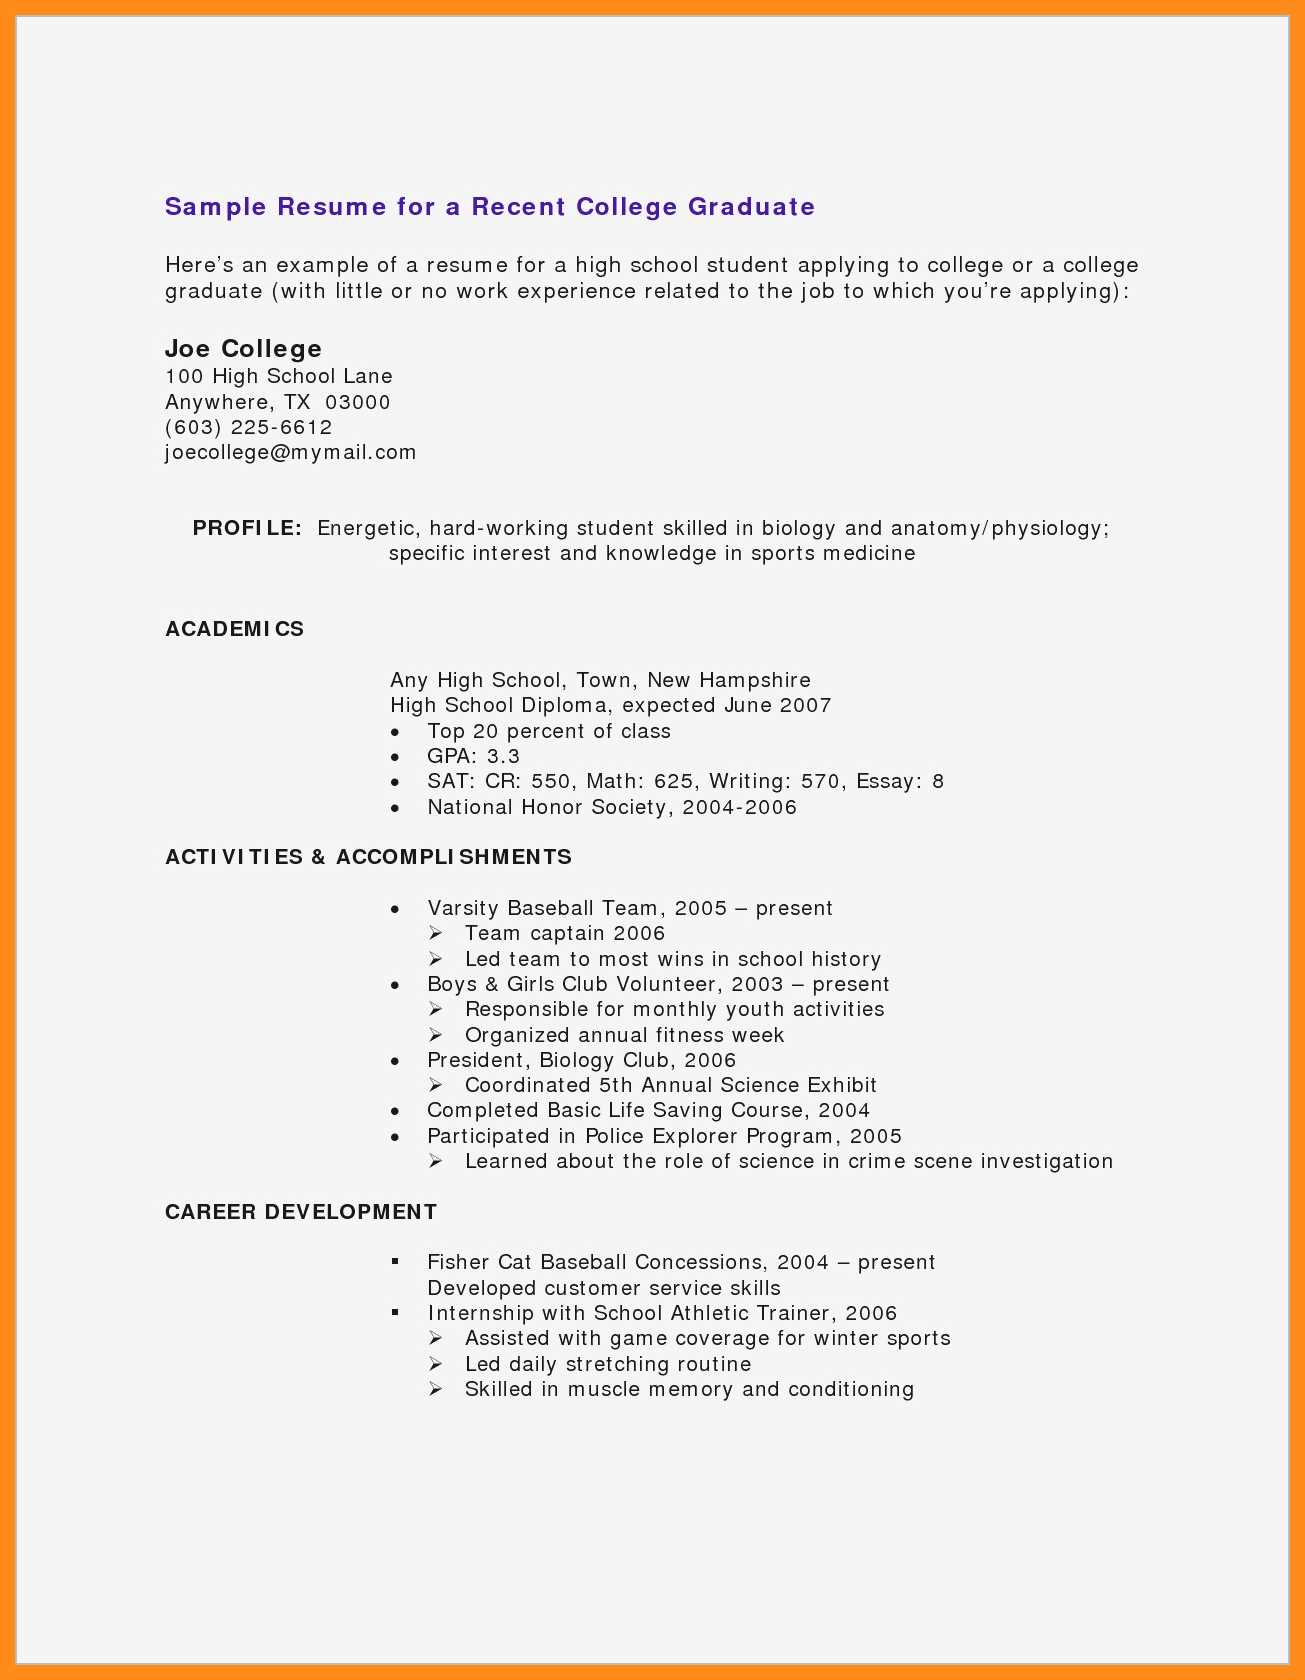 cv samples for students with no experience pdf resume teenager little work microsoft Resume Resume For Teenager With Little Work Experience